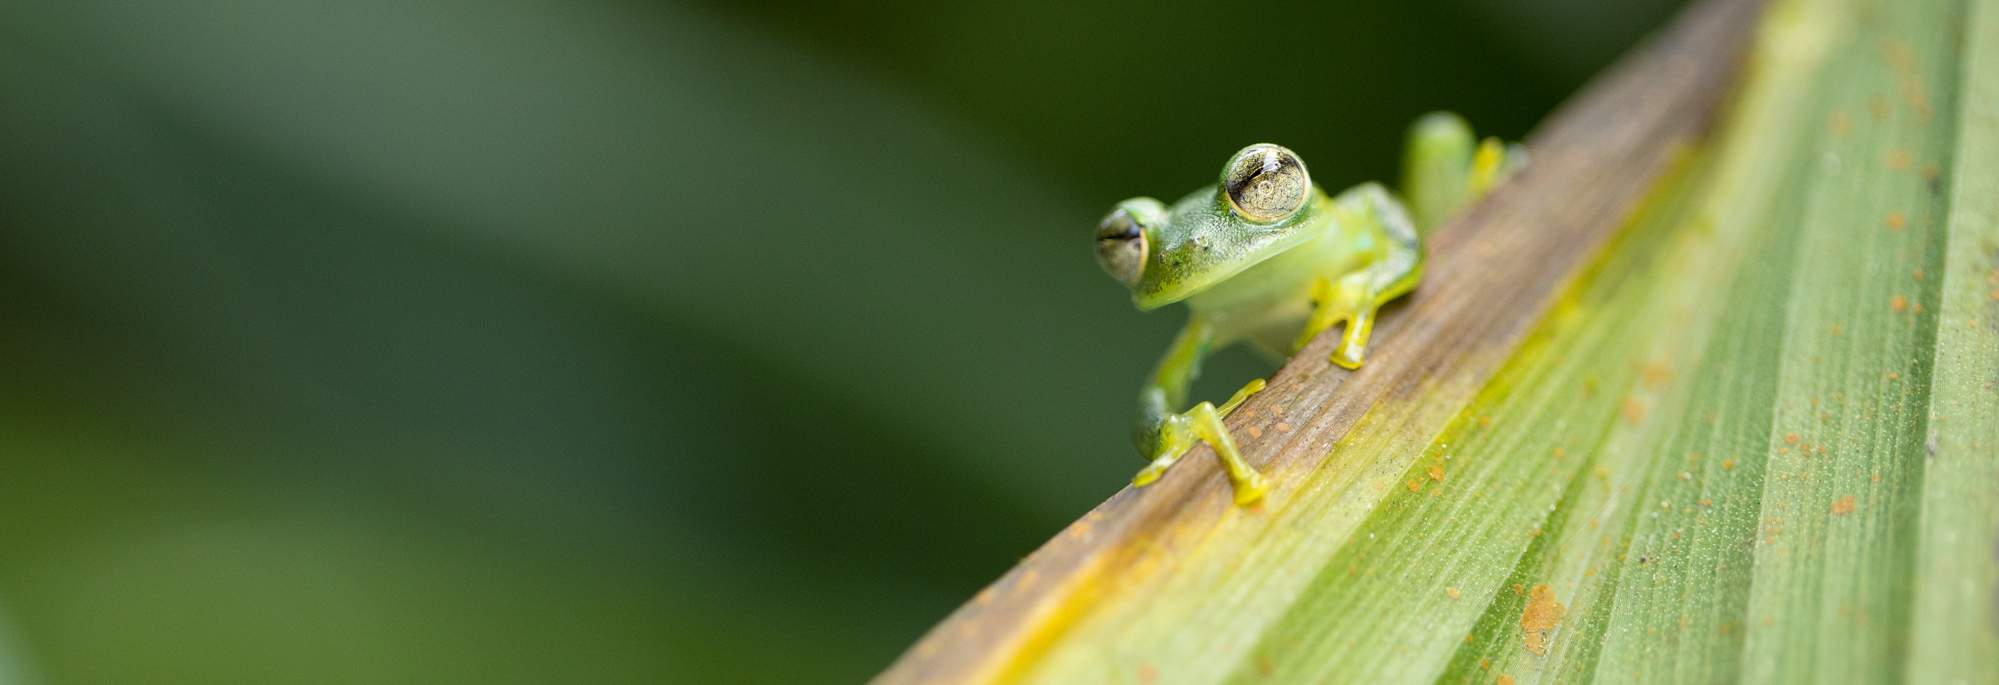 Up close view of a glass frog in the wild